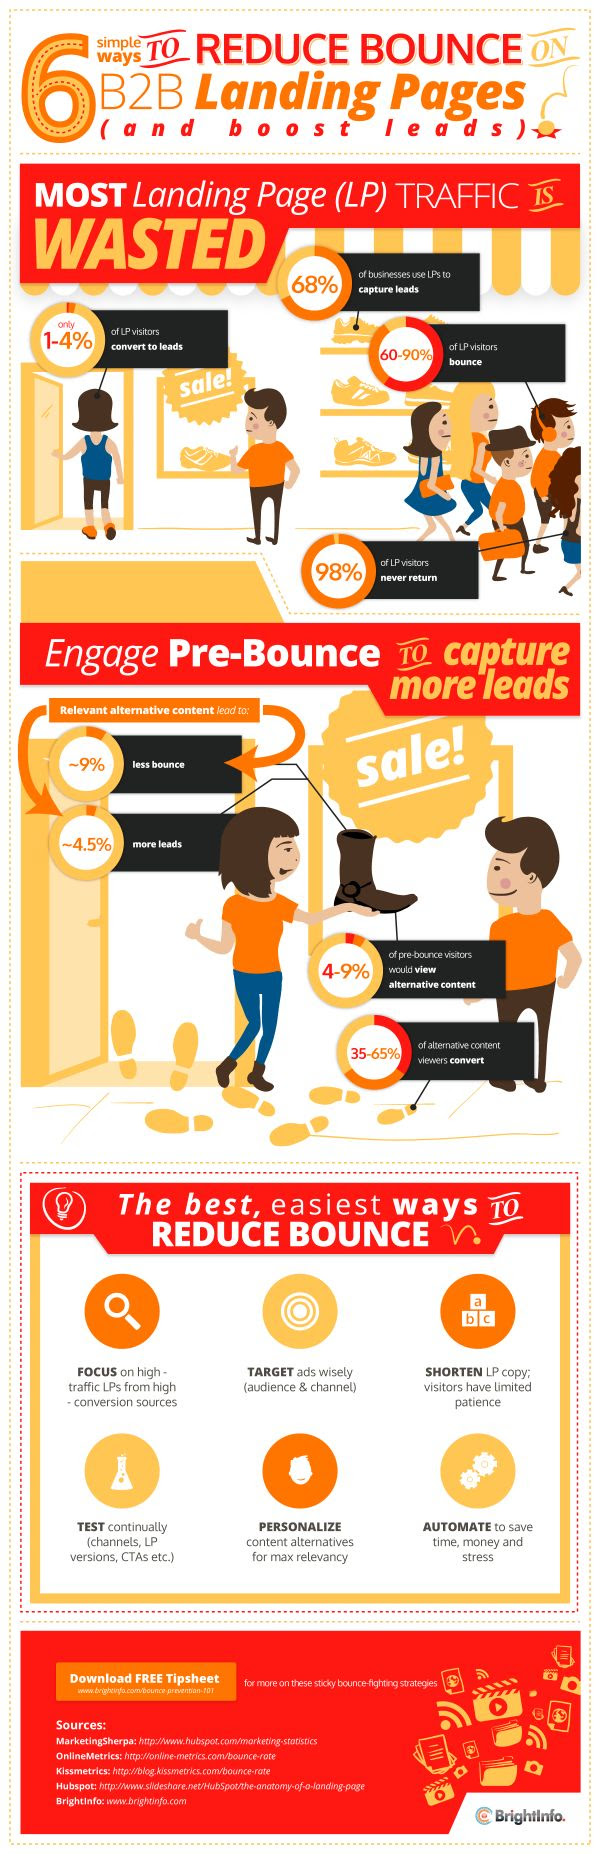 6 Ways to Reduce Bounce on B2B Landing Pages